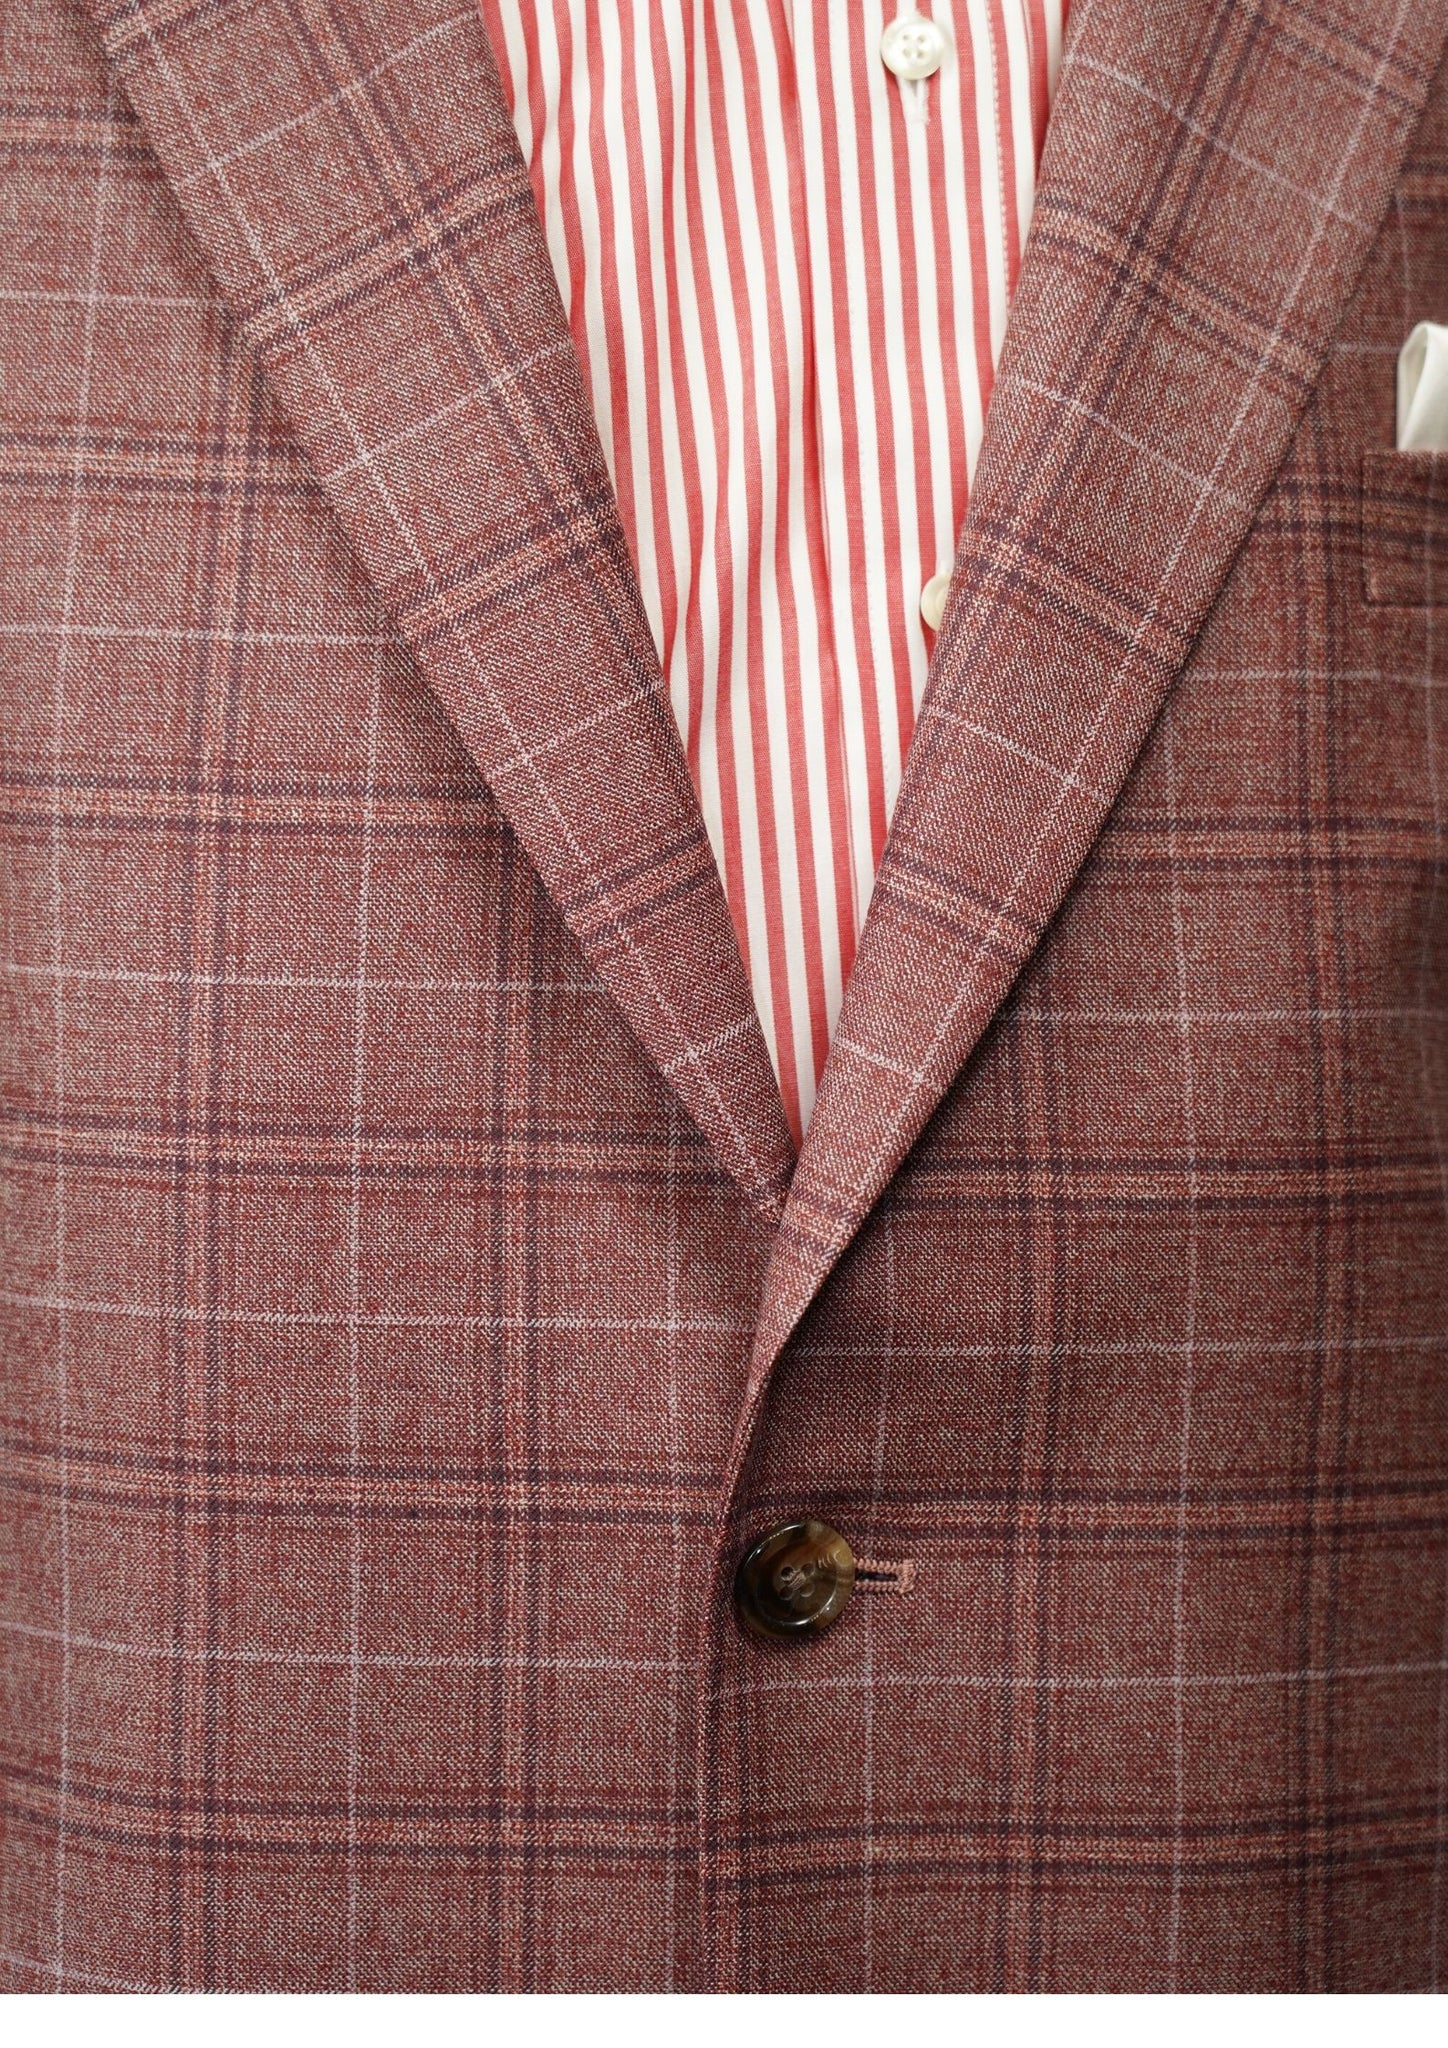 CRANBERRY WINDOW PANE SPORT COAT